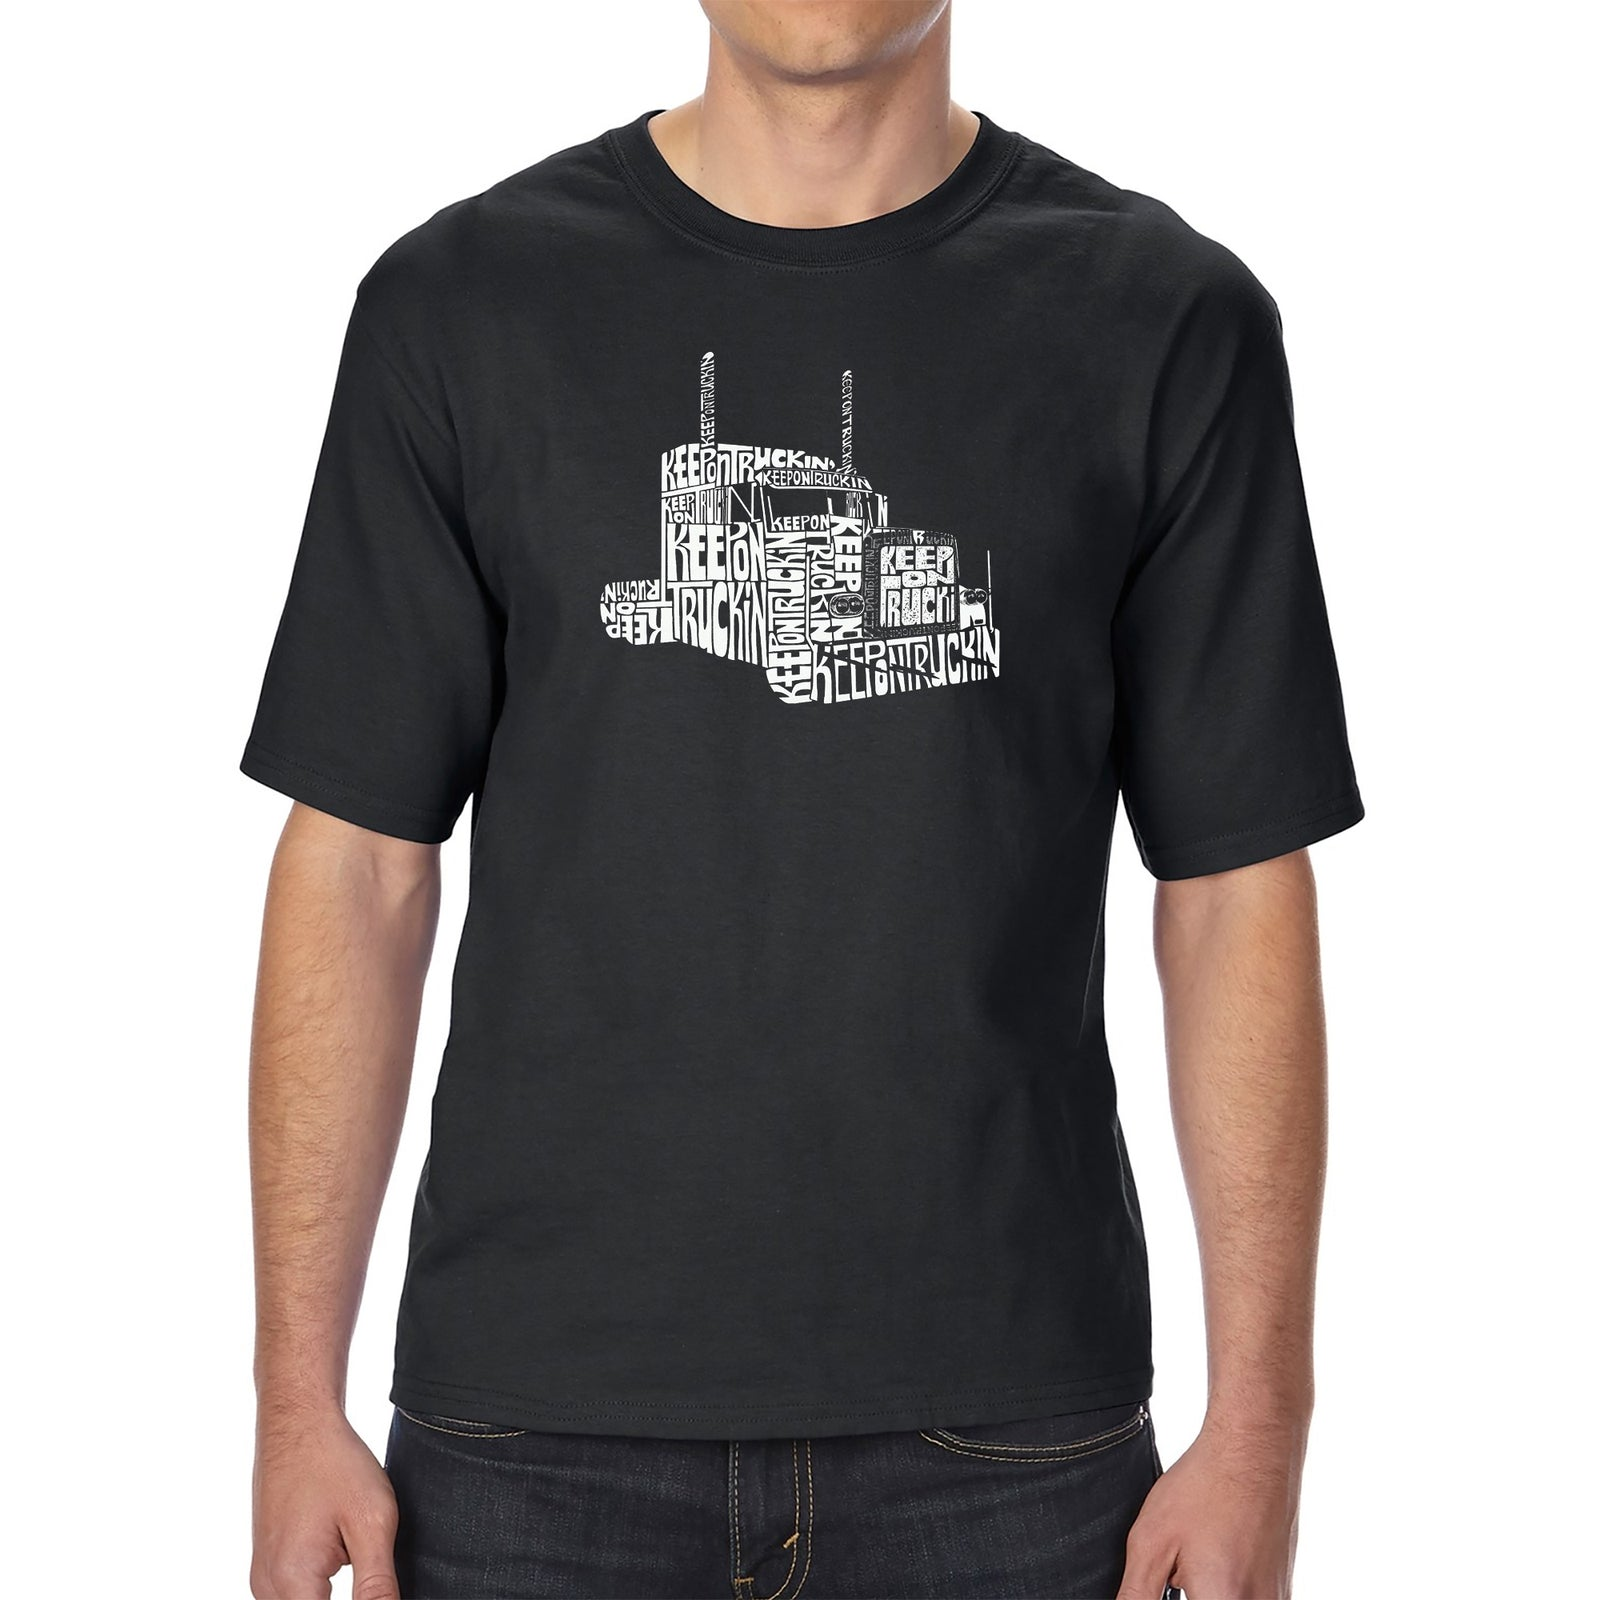 Men's Tall and Long Word Art T-shirt - KEEP ON TRUCKIN'